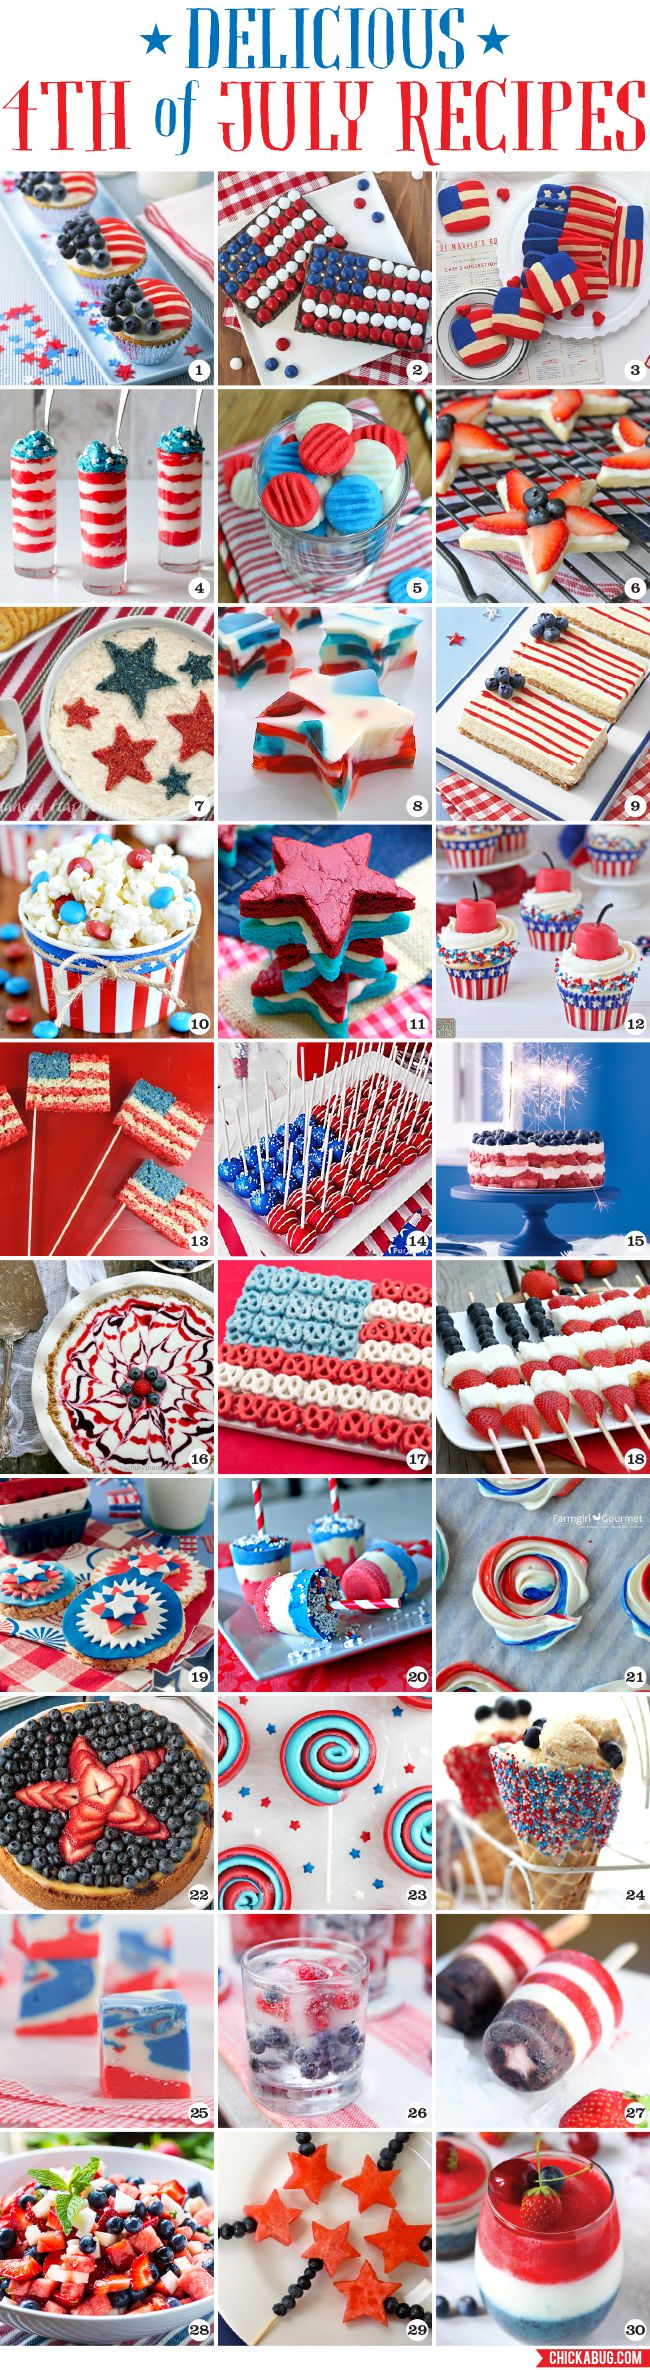 4th of july recipes | ... !!) 4th of July recipes! These look so amazing! #4thofjuly #recipes